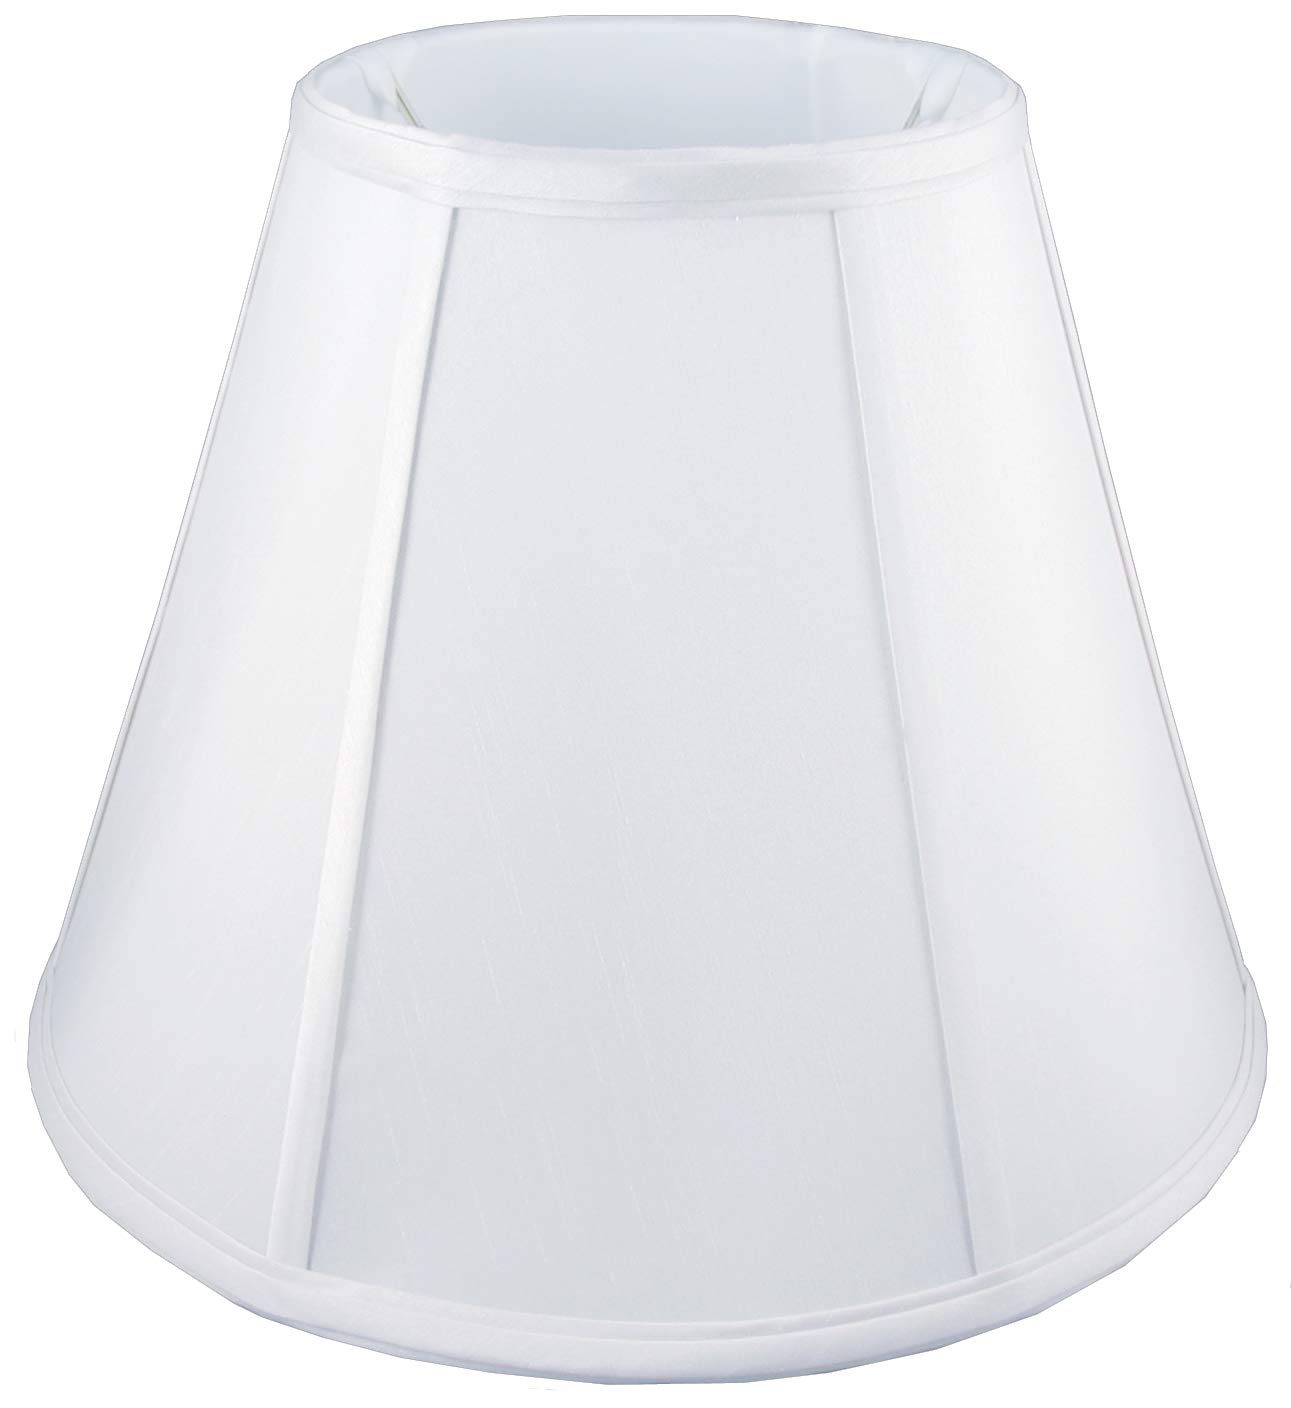 American Pride 5'' x 8'' x 7'' Round Soft Shantung Tailored Lampshade, White